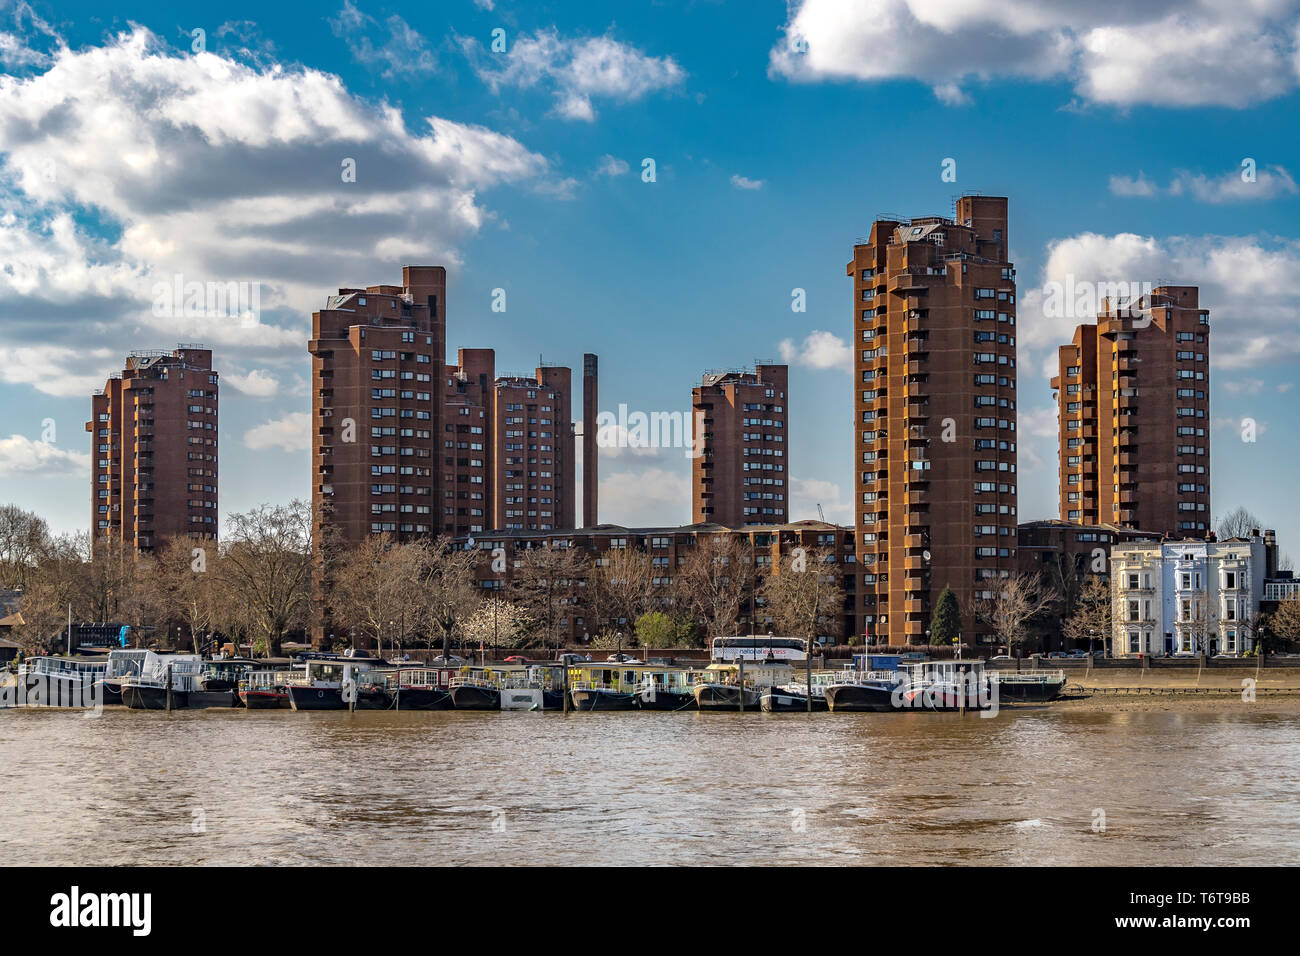 The 7 high-rise tower blocks of The World's End Estate ,Chelsea from across The River Thames Stock Photo